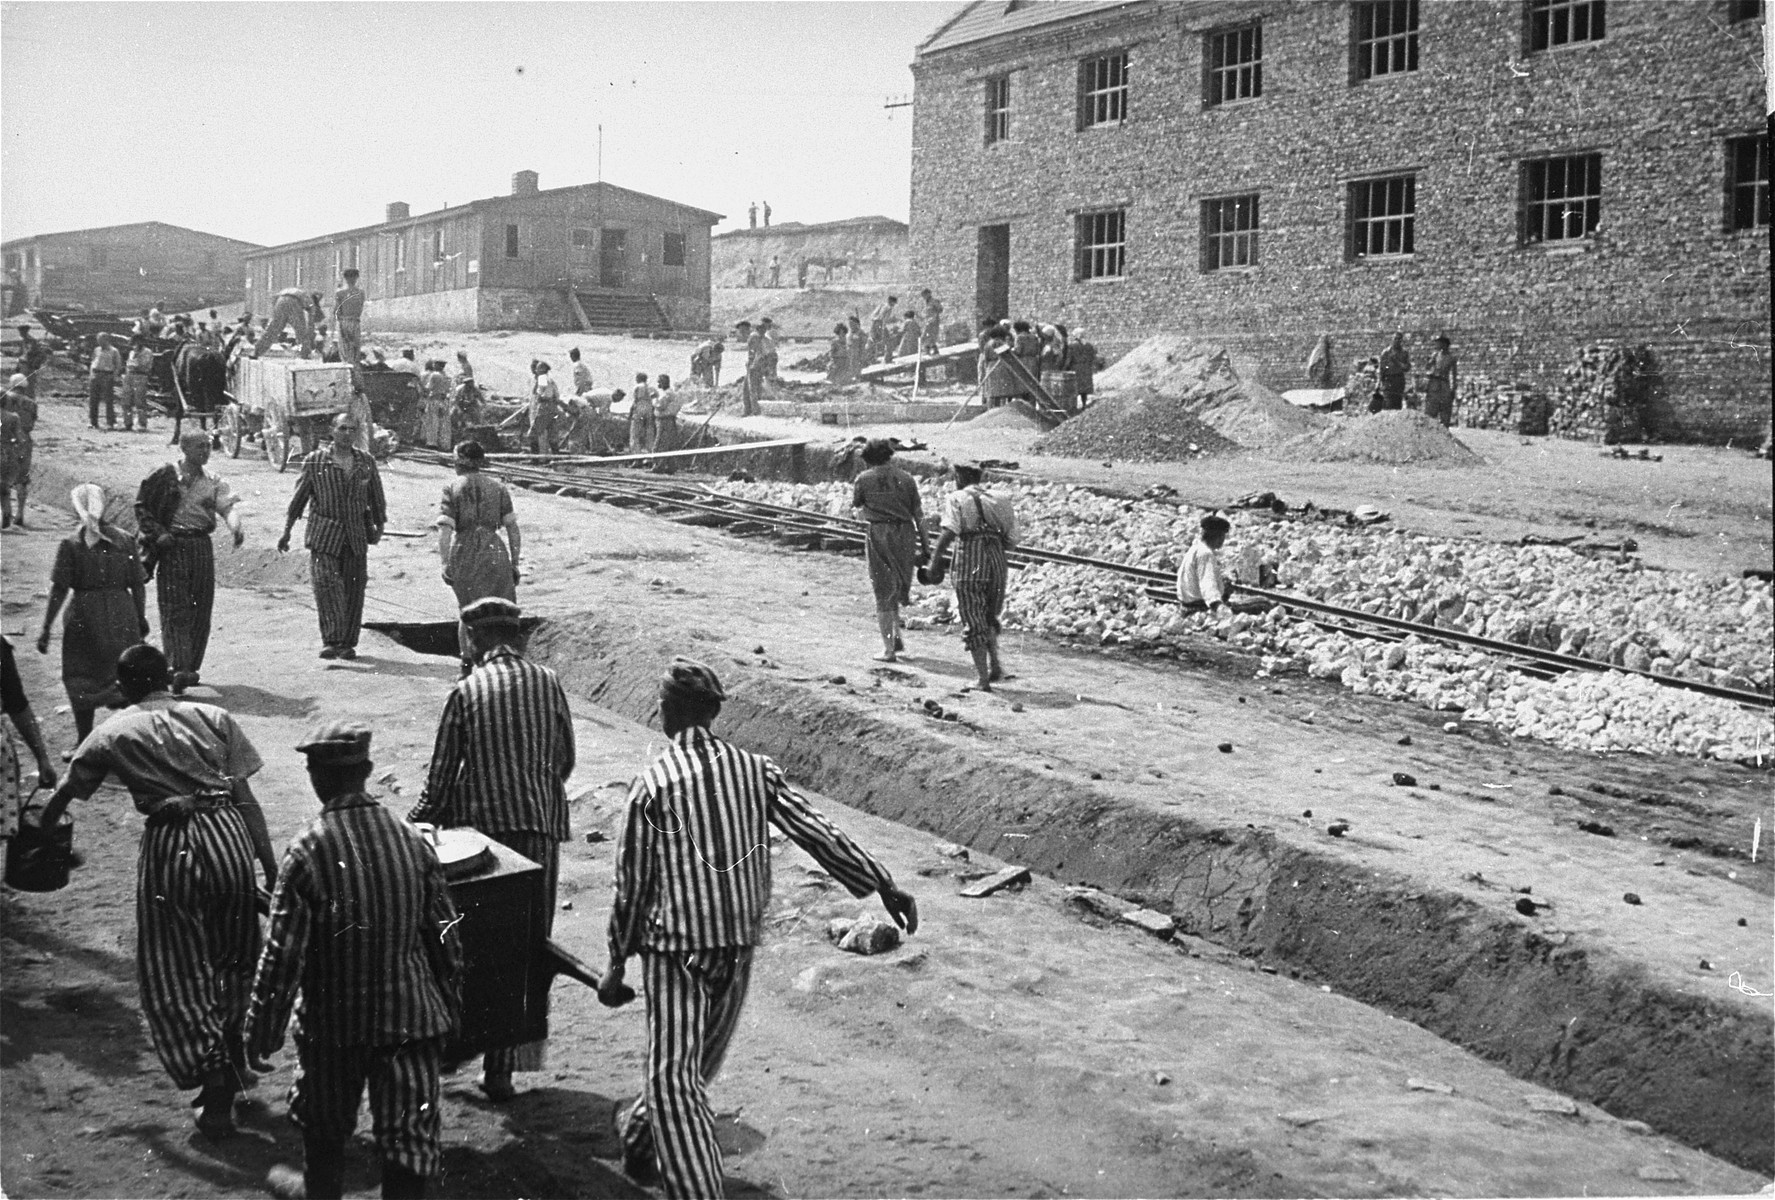 Four prisoners in the foreground carry a food container to others at forced labor.